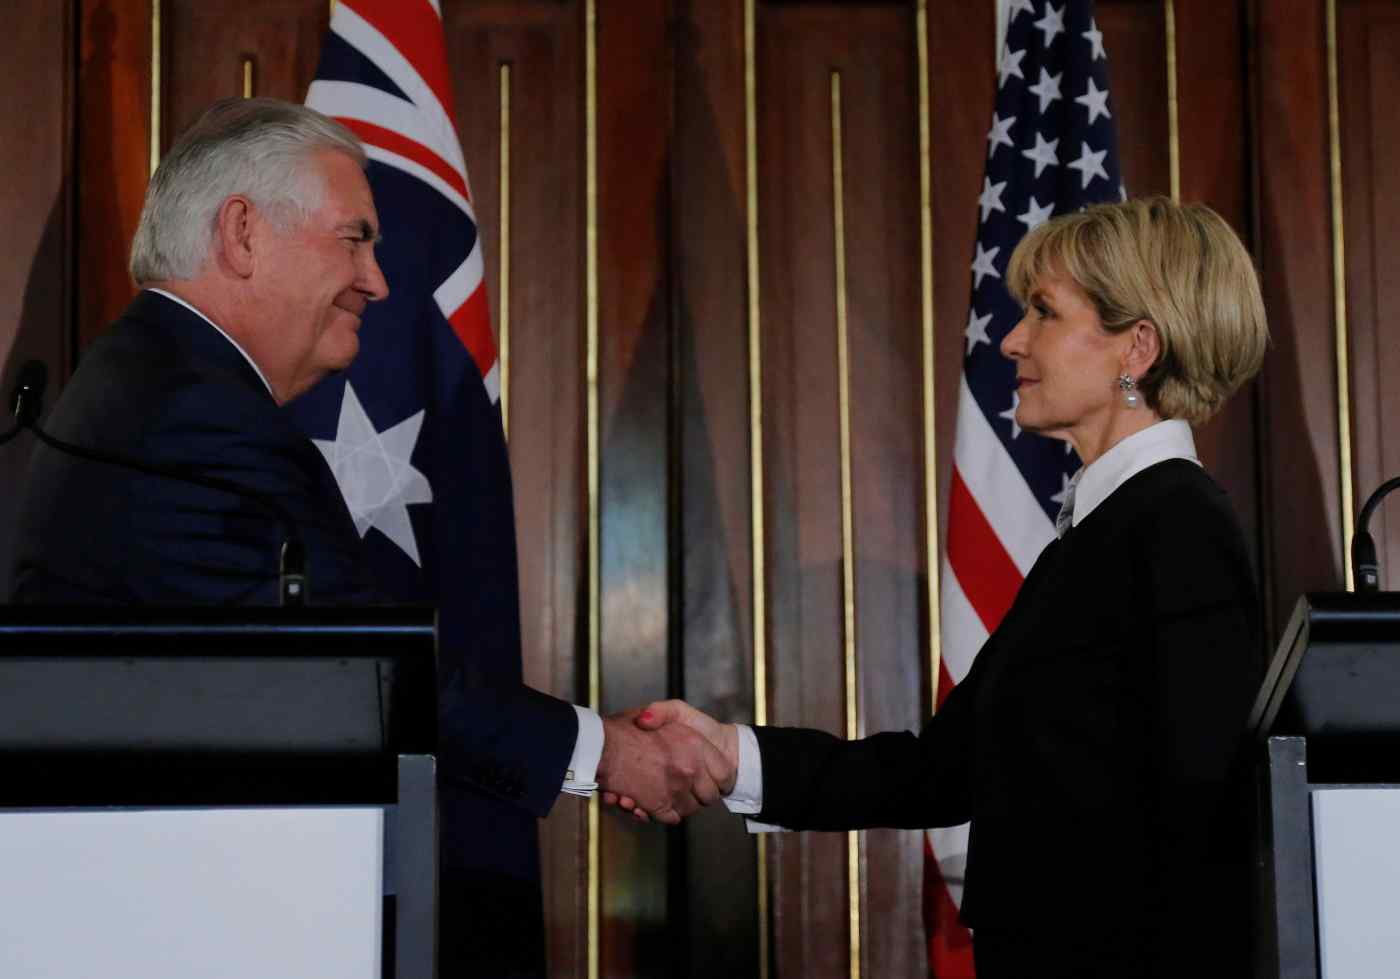 U.S. Secretary of State Rex Tillerson and Australian Foreign Minister Julie Bishop shake hands at the end of a June 5 press conference in Sydney (© Reuters)